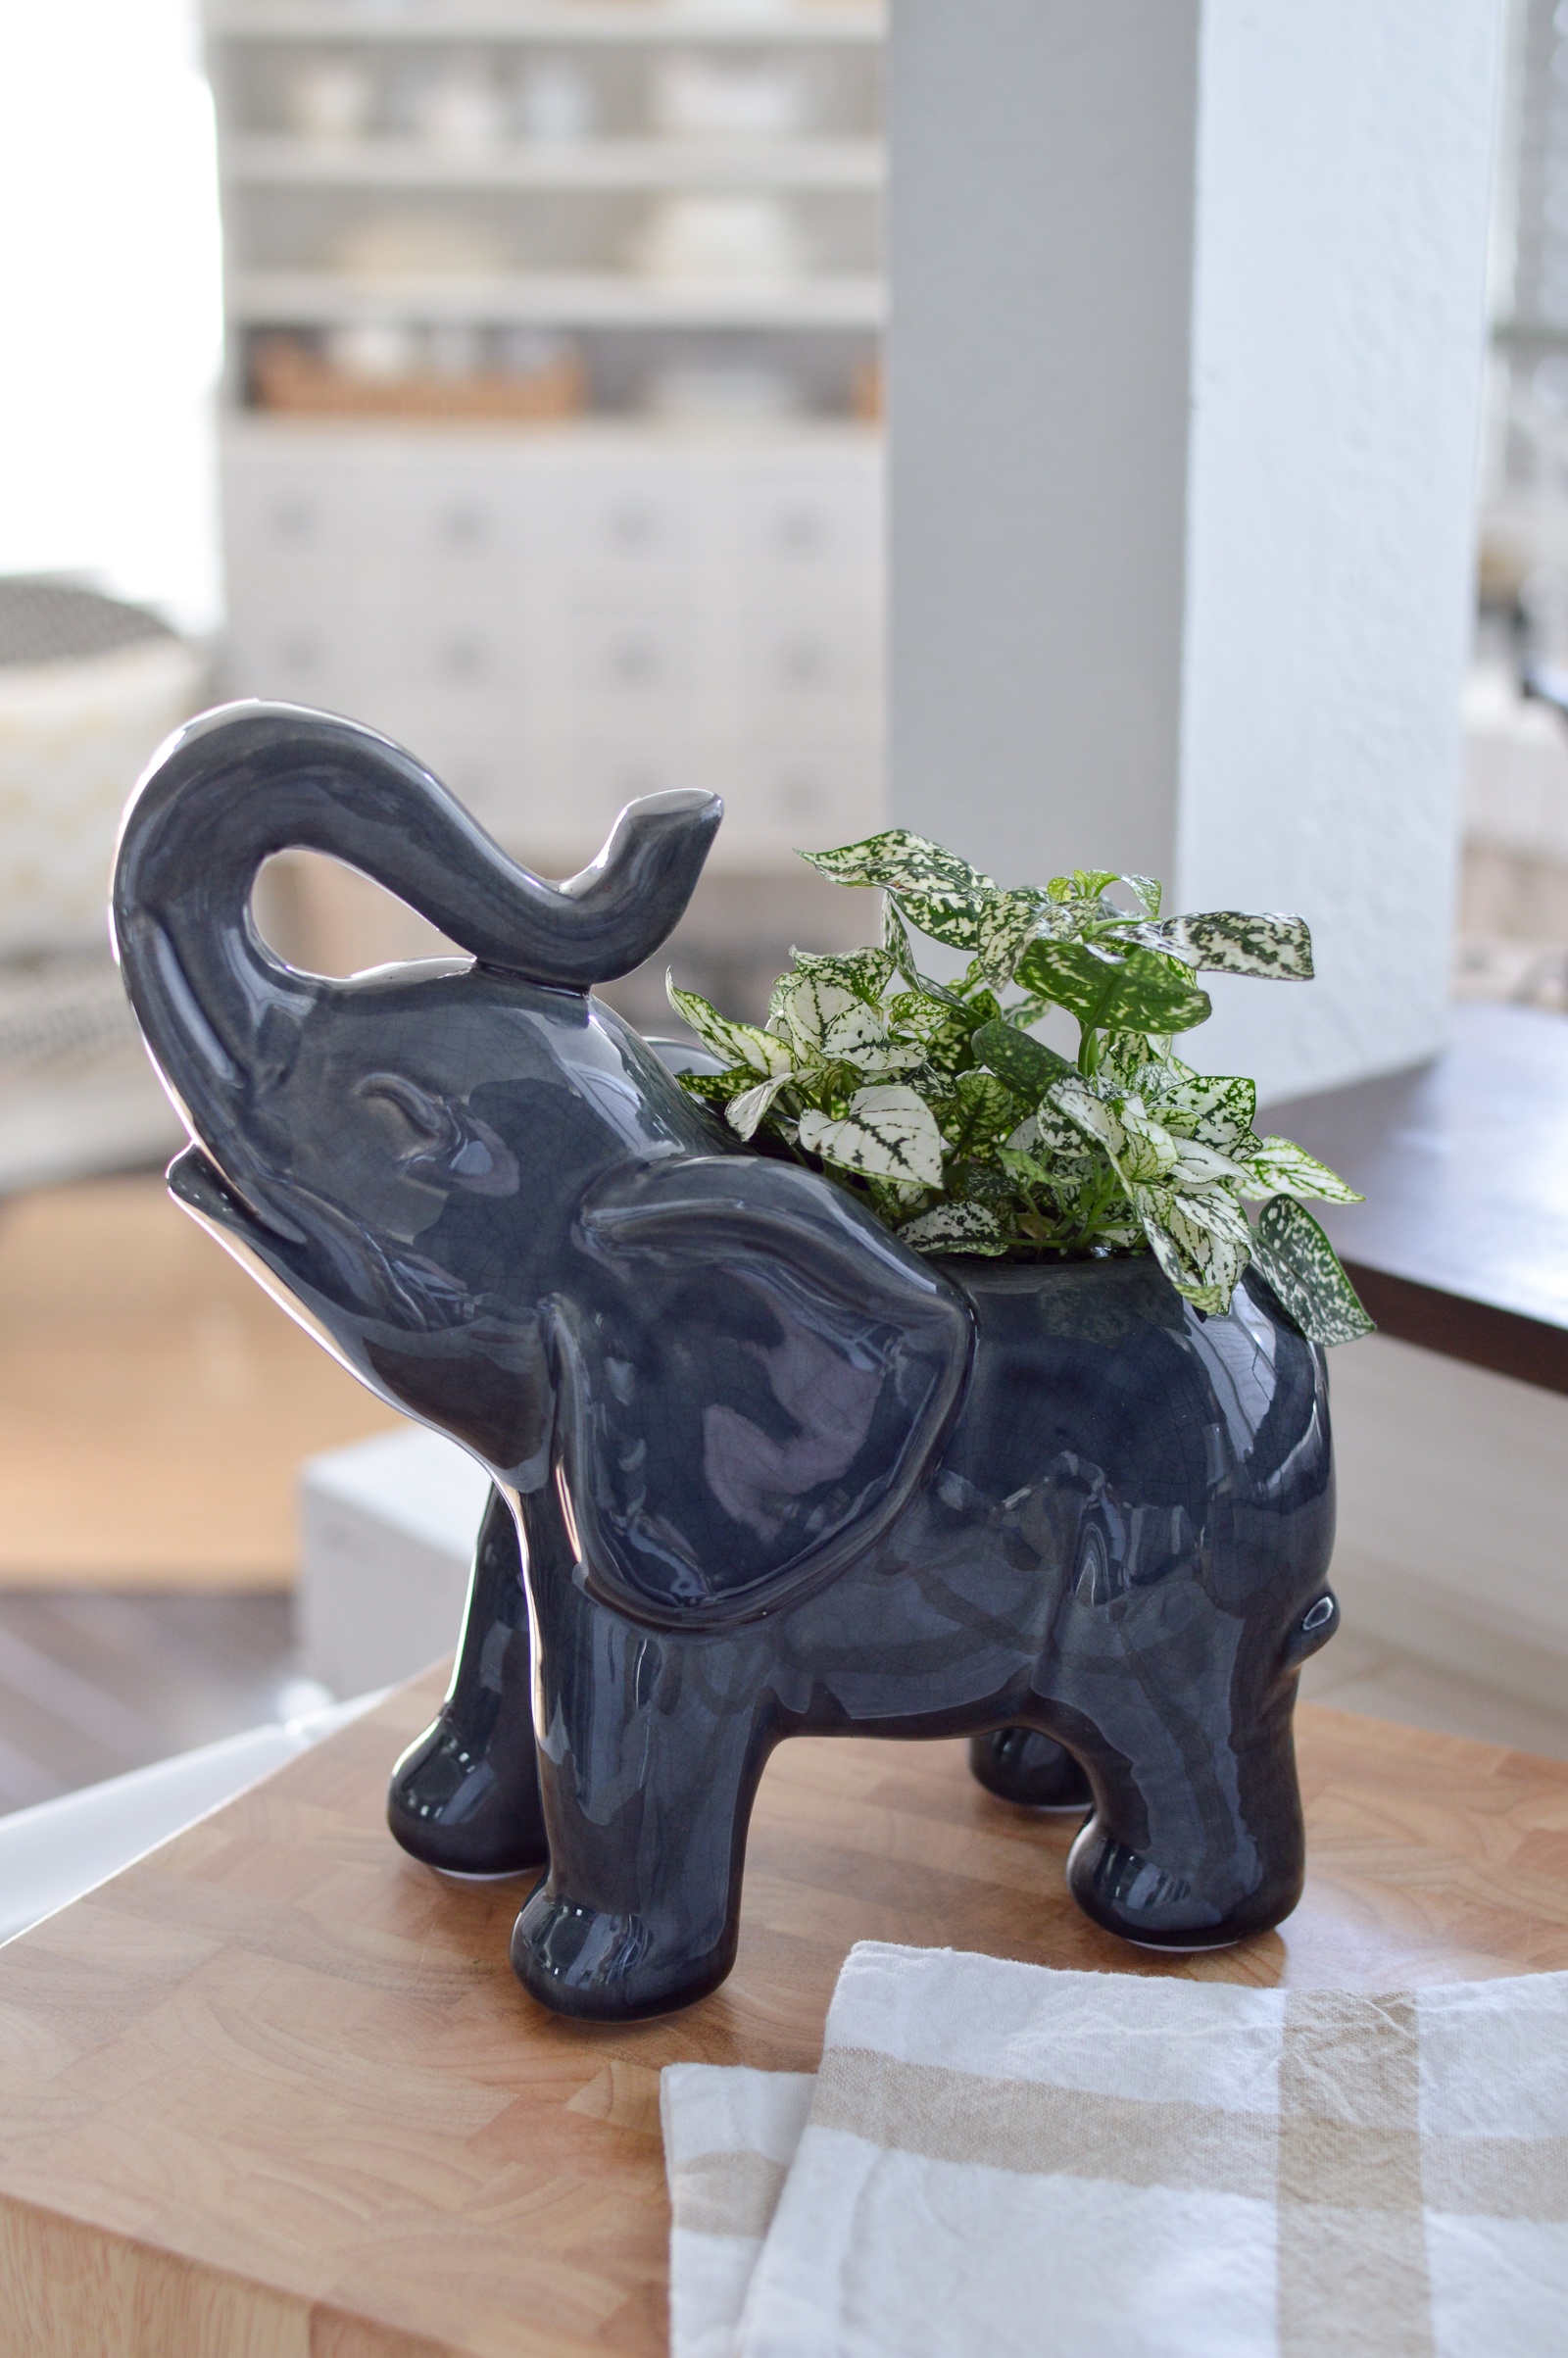 Outdoor In Spring Home Decor and Furniture Ideas #sponsored with Better Homes & Gardens at Walmart | Elephant planter